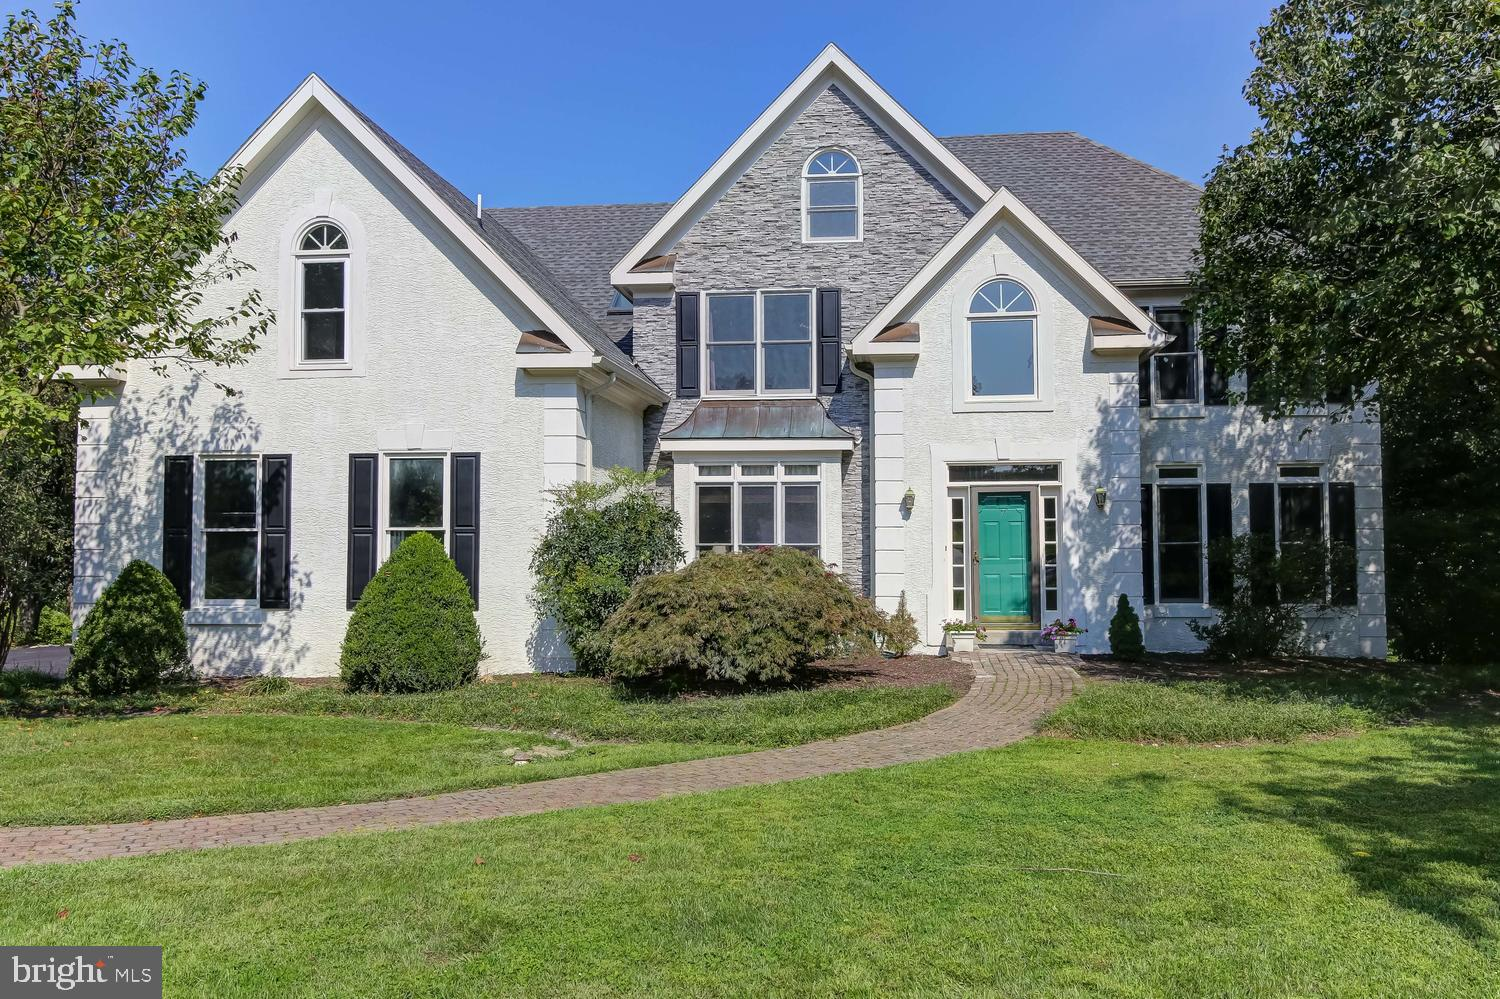 7 STONEY END ROAD, BROOMALL, PA 19008